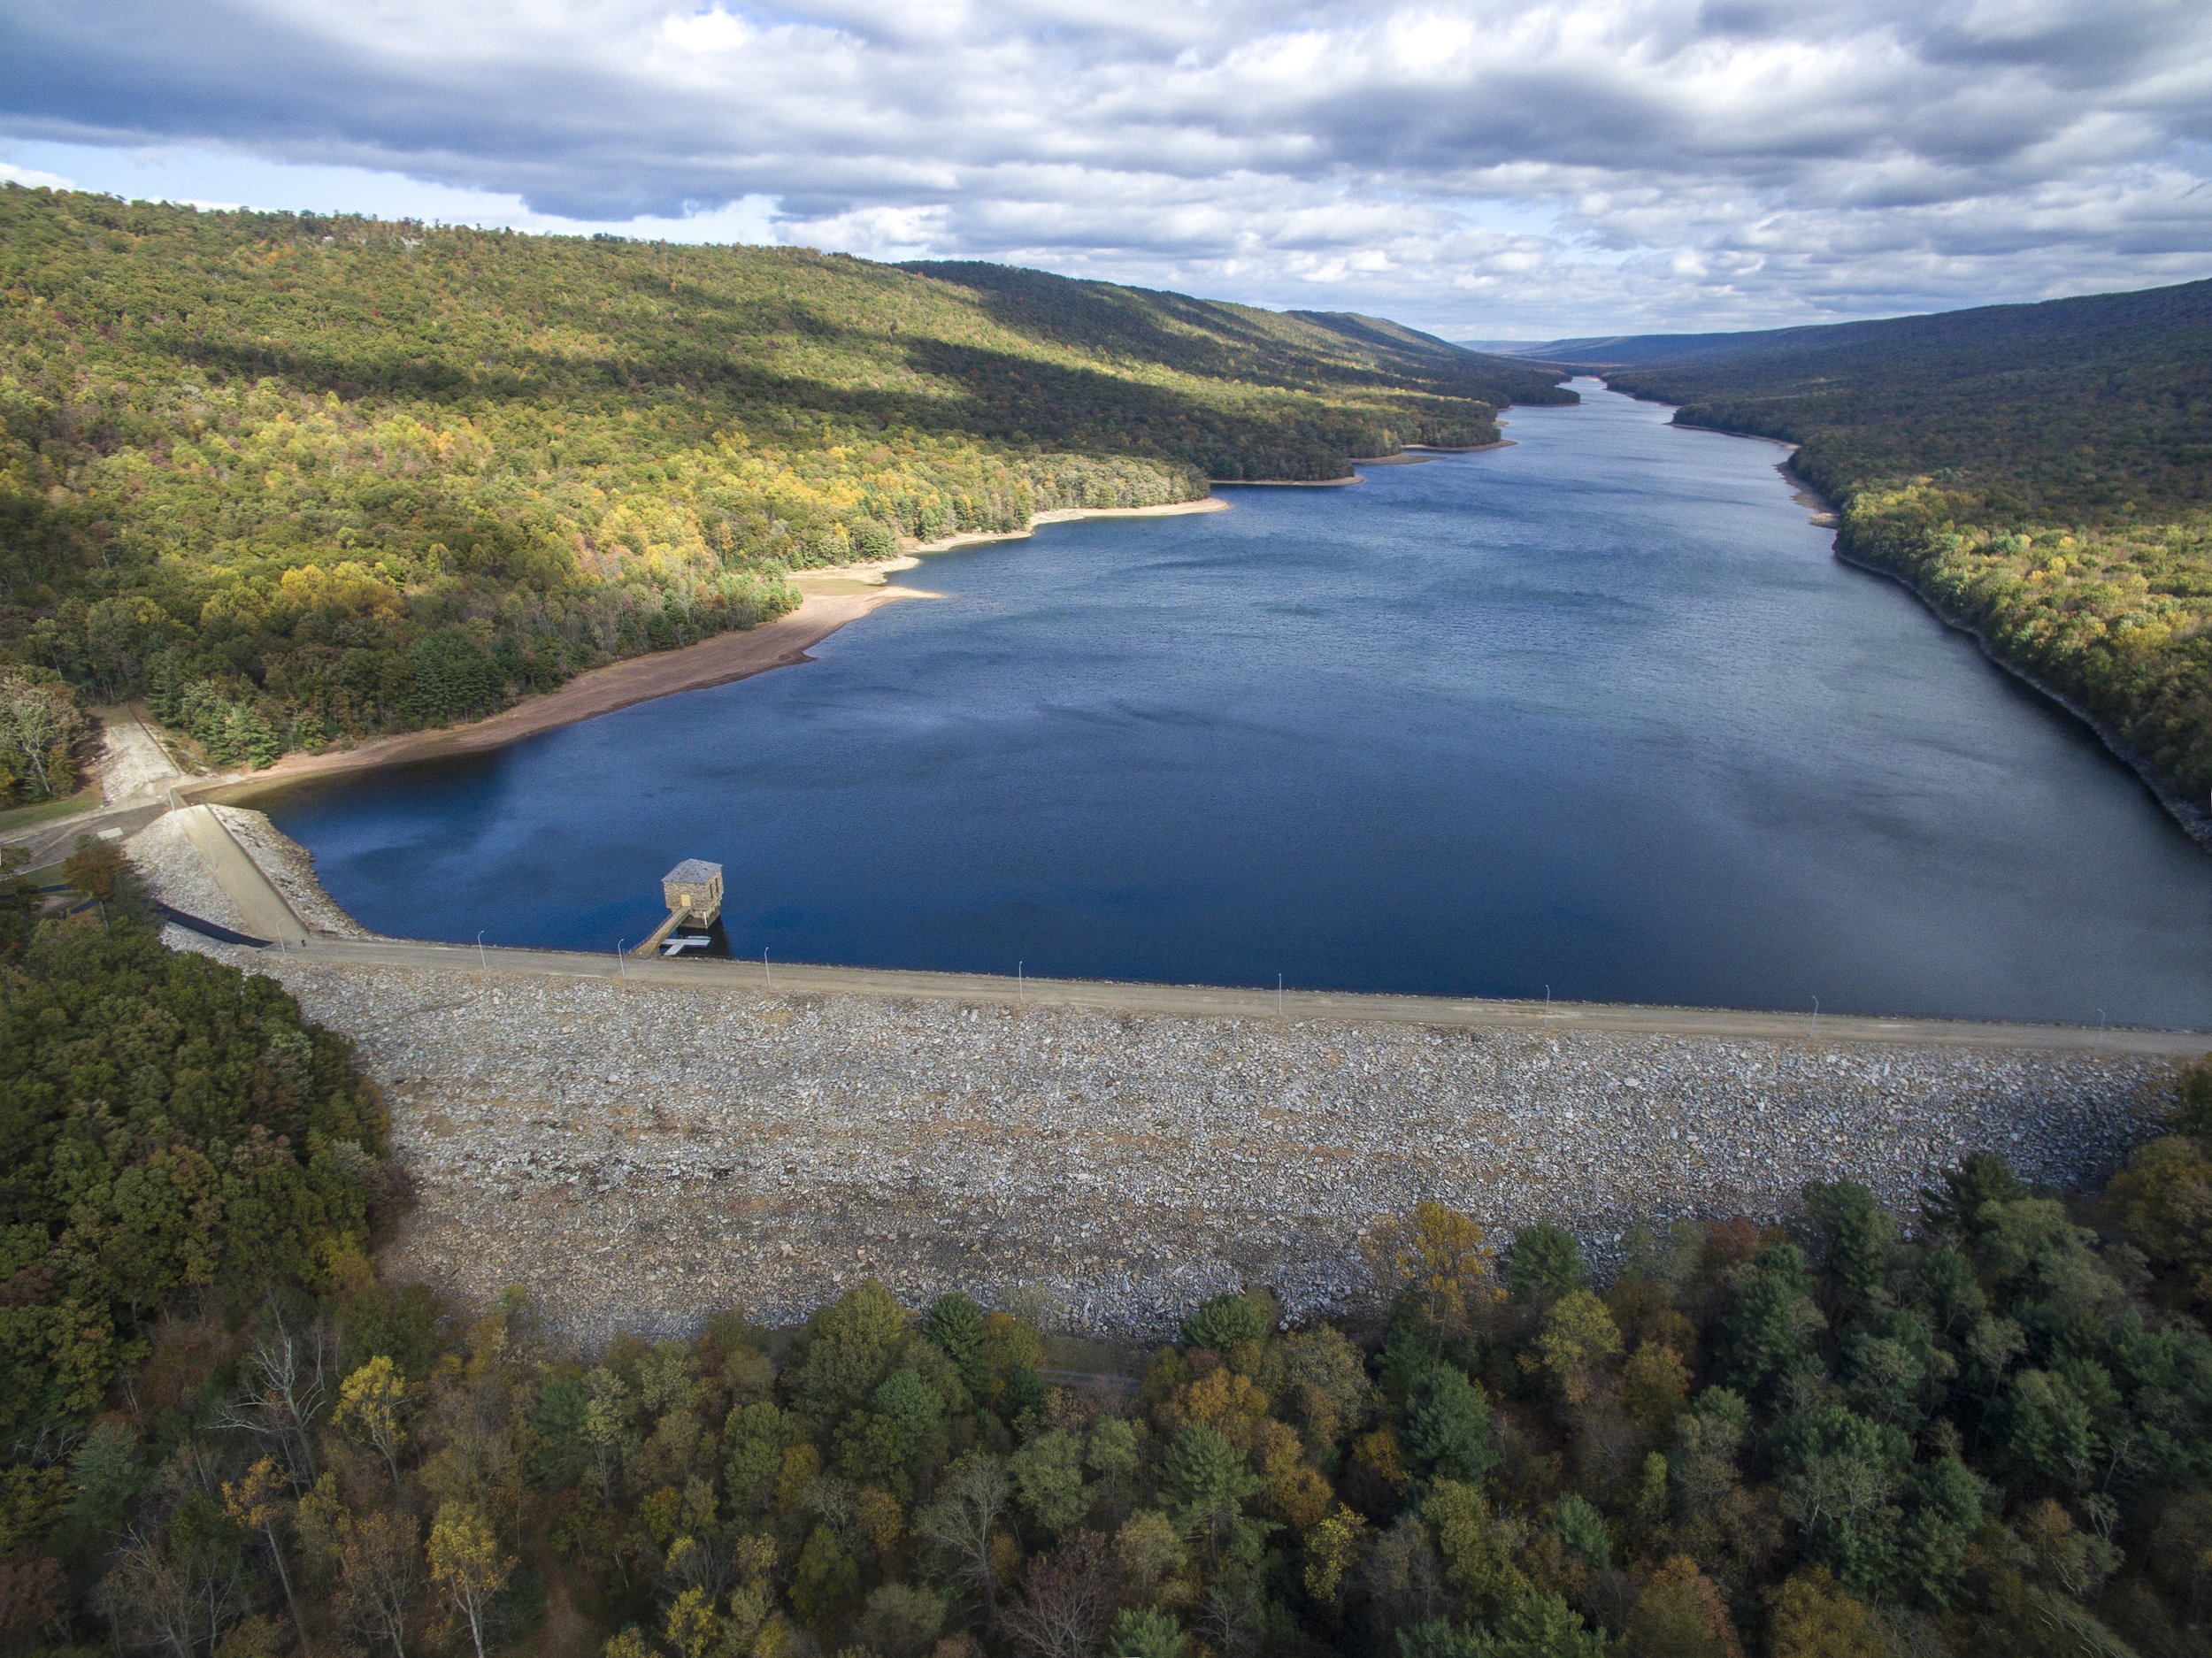 DeHart Dam and Reservoir (courtesy Capital Region Water)